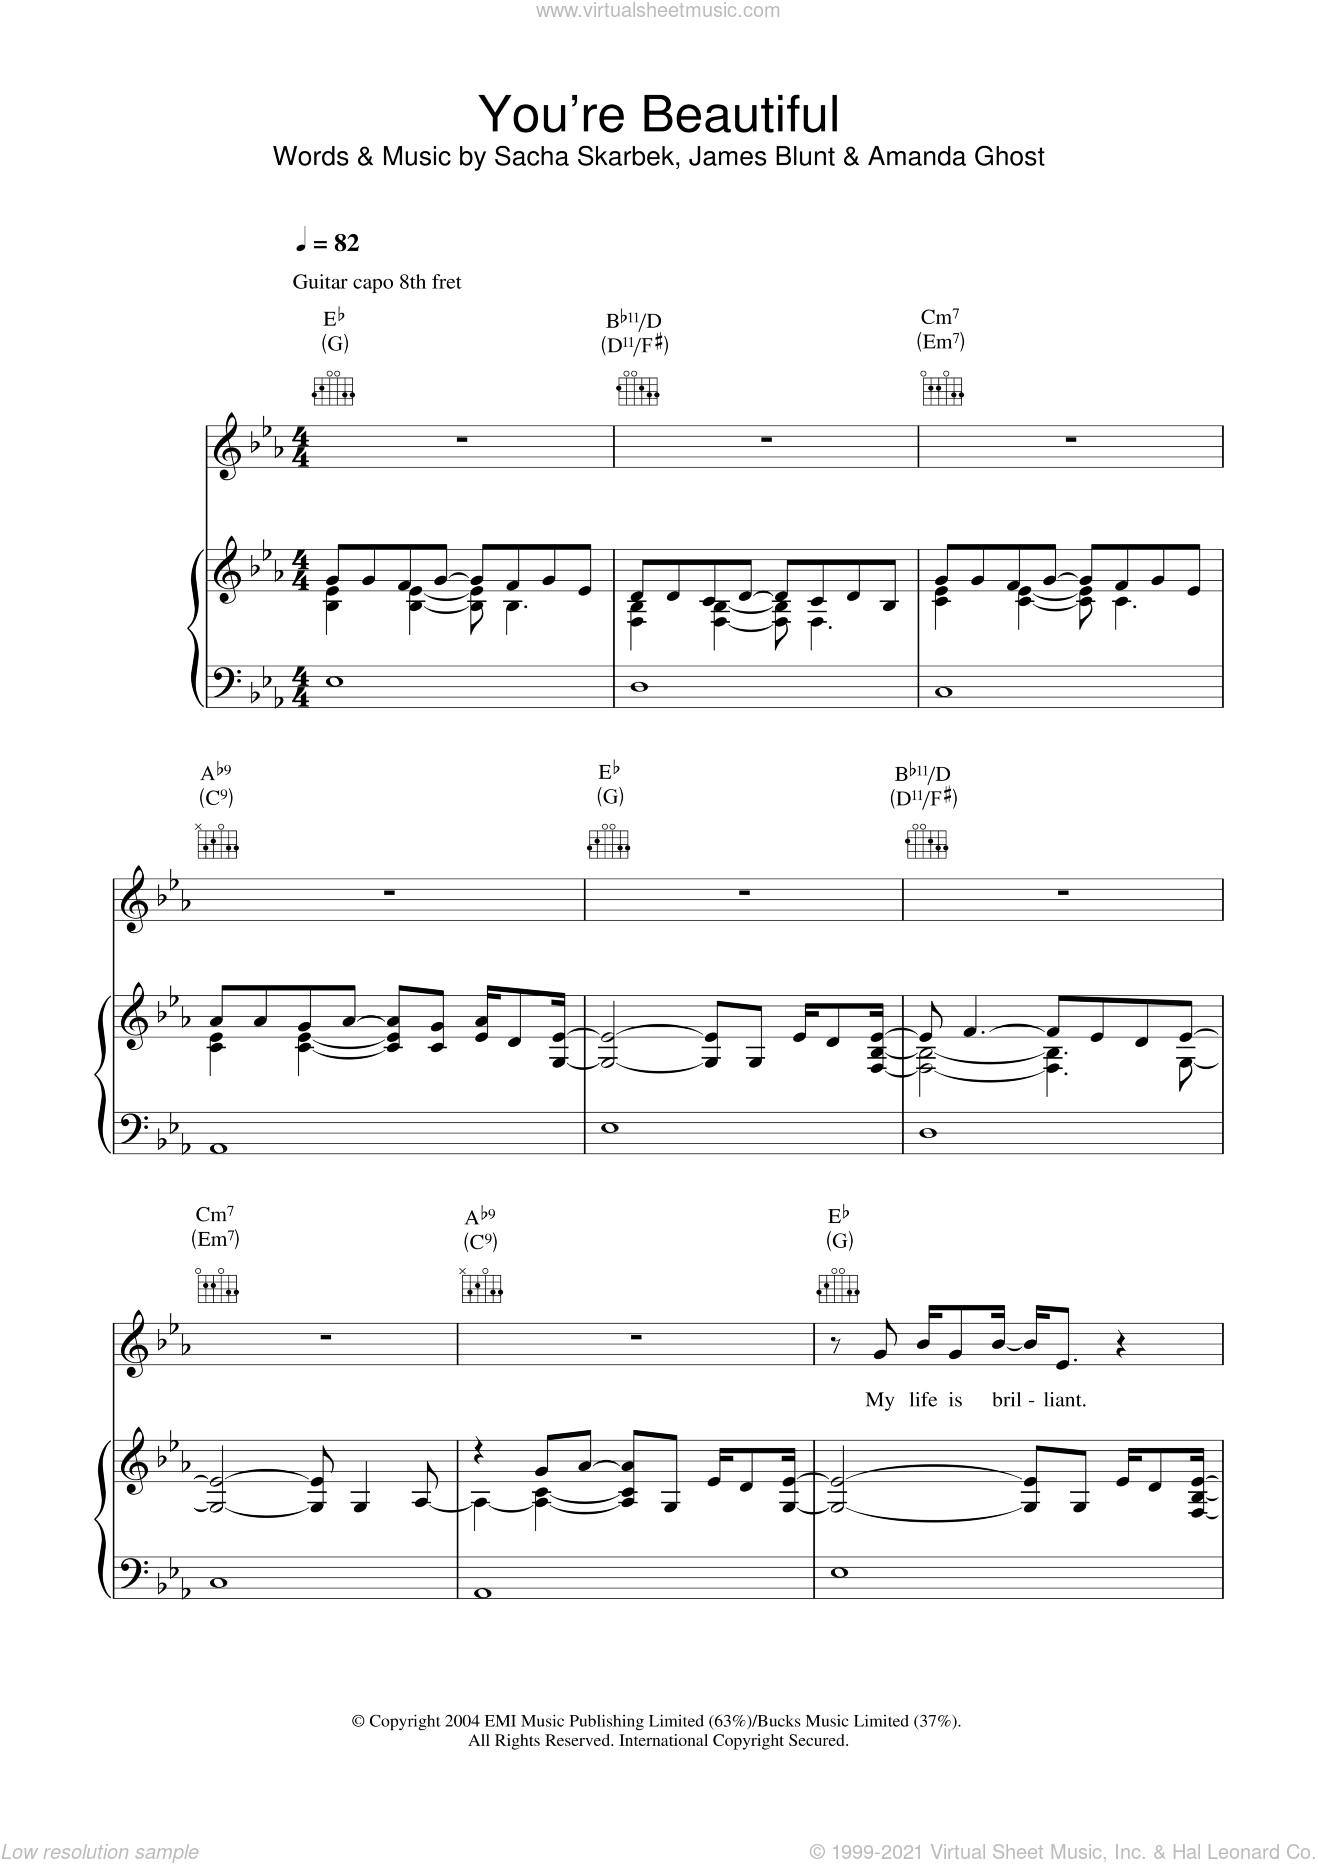 You're Beautiful sheet music for voice, piano or guitar by James Blunt, Amanda Ghost and Sacha Skarbek, intermediate skill level